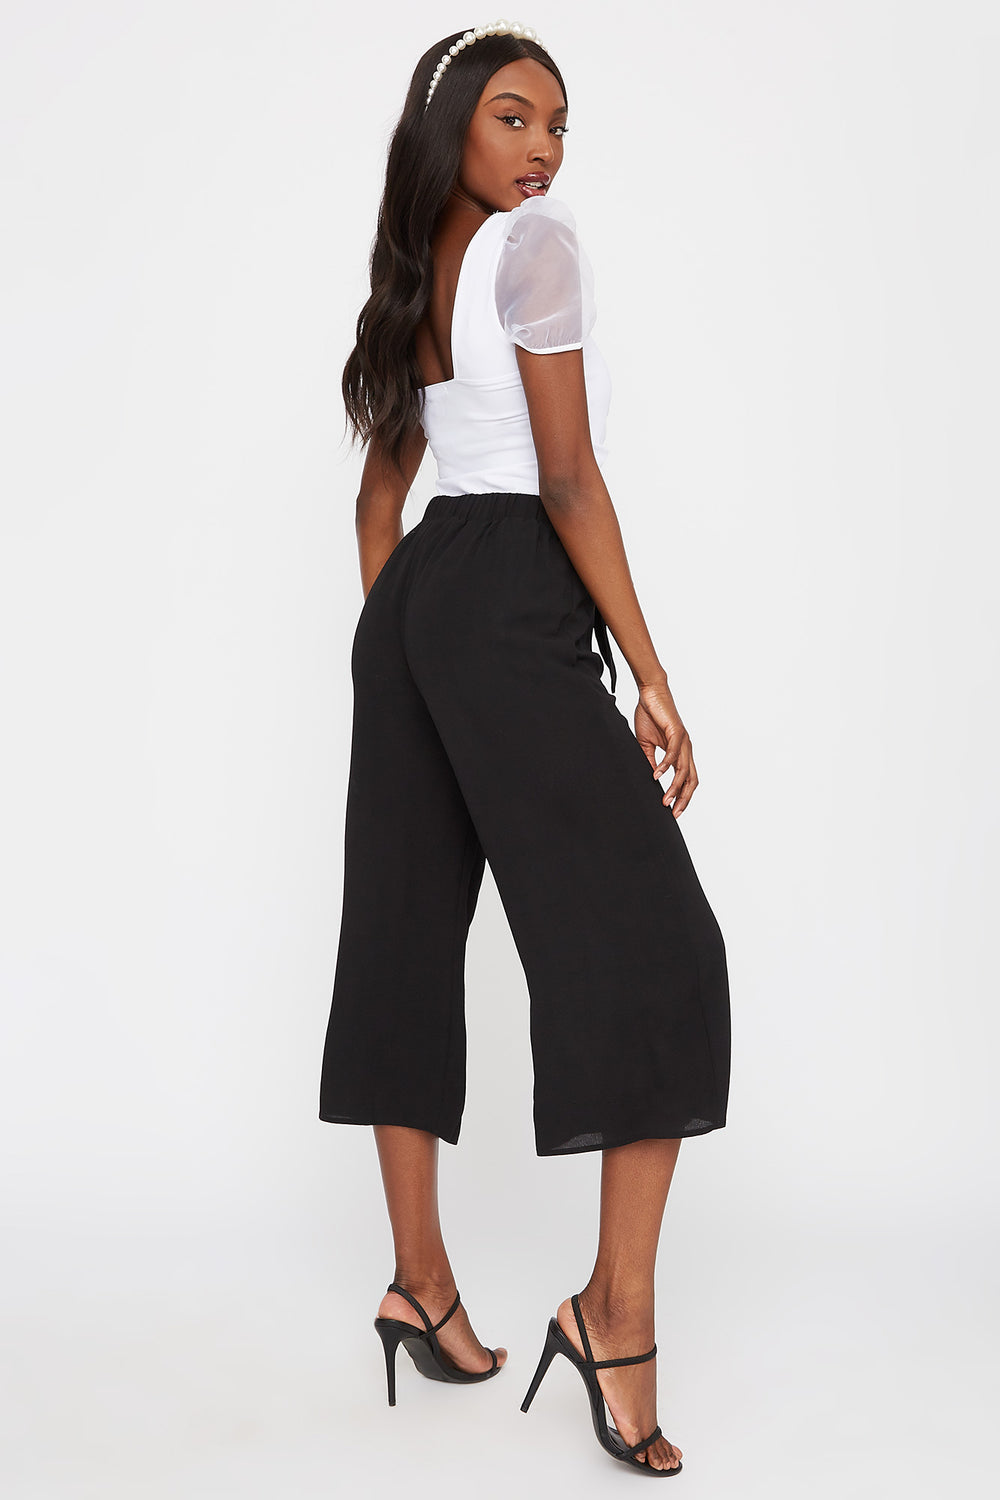 Pull-On Self Tie Culotte Black